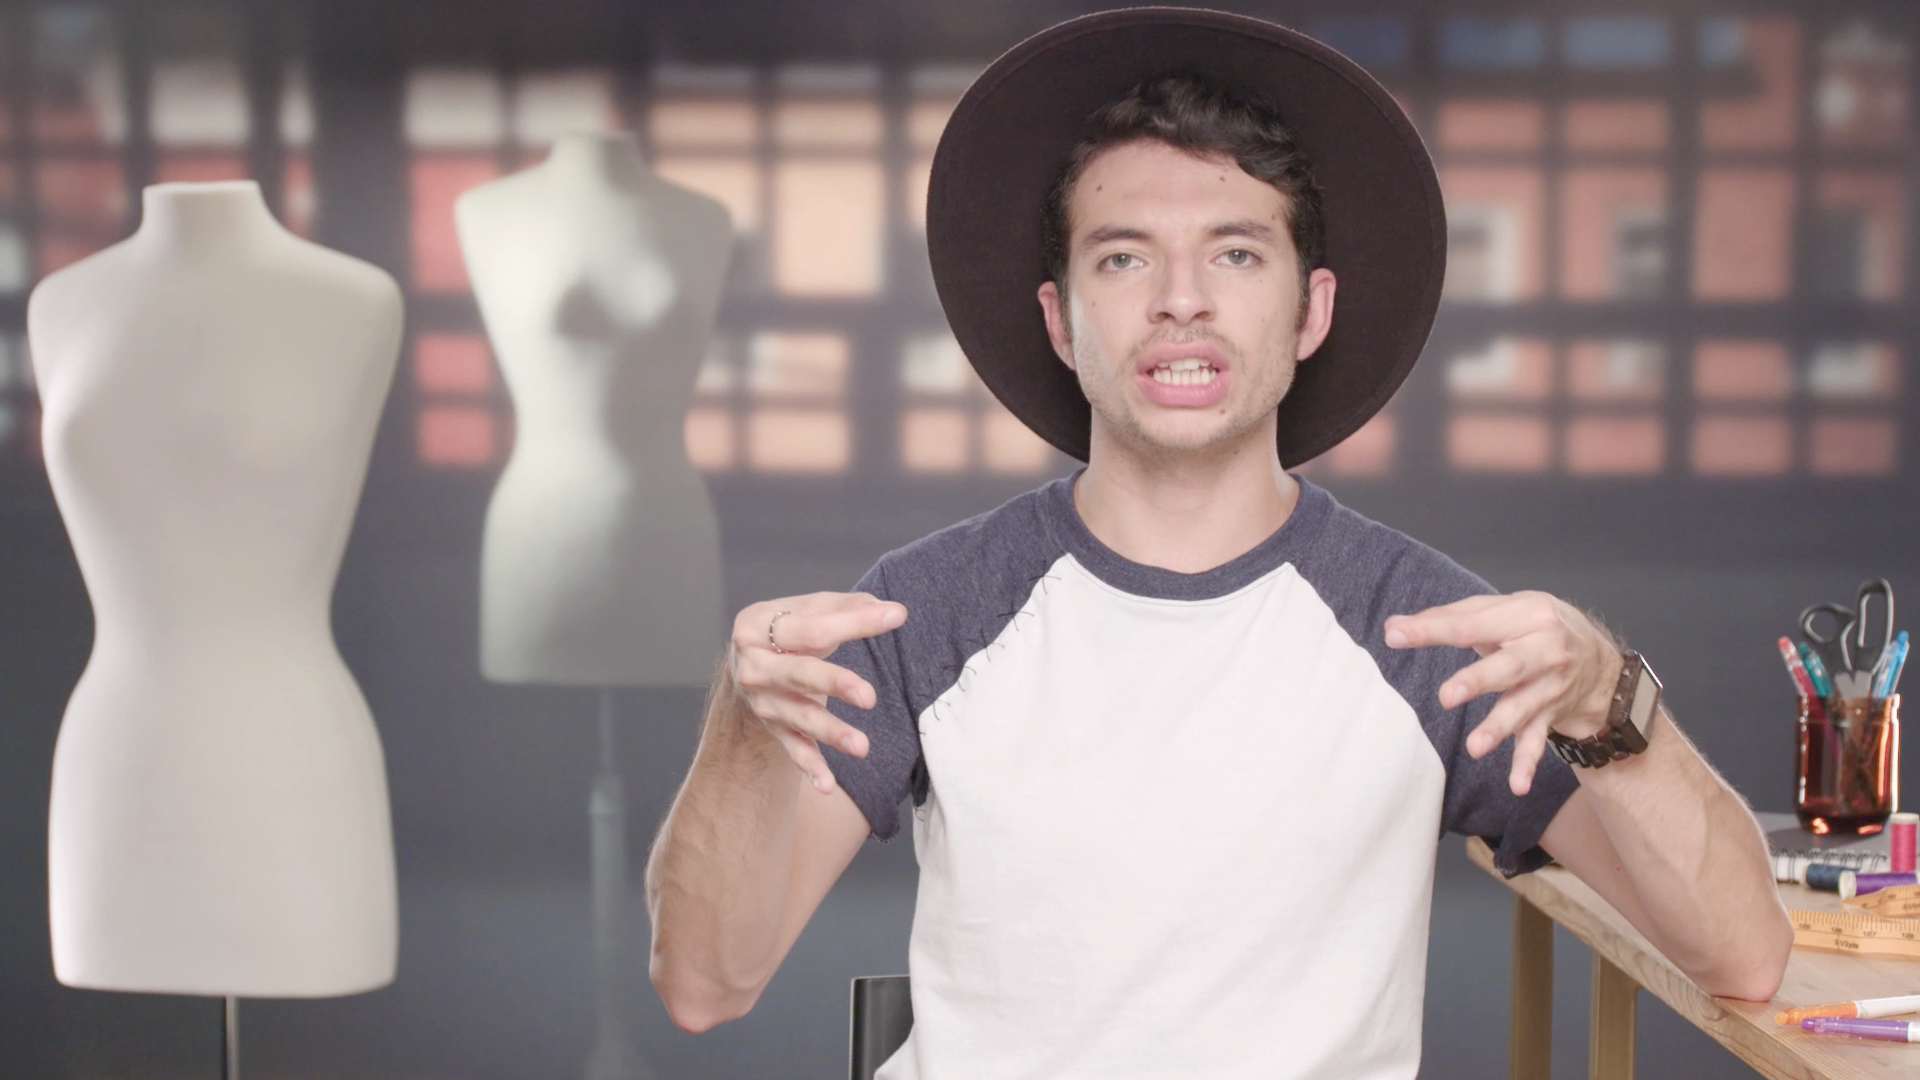 The Project Runway Season 18 Designers Dish on Their Design Aesthetic